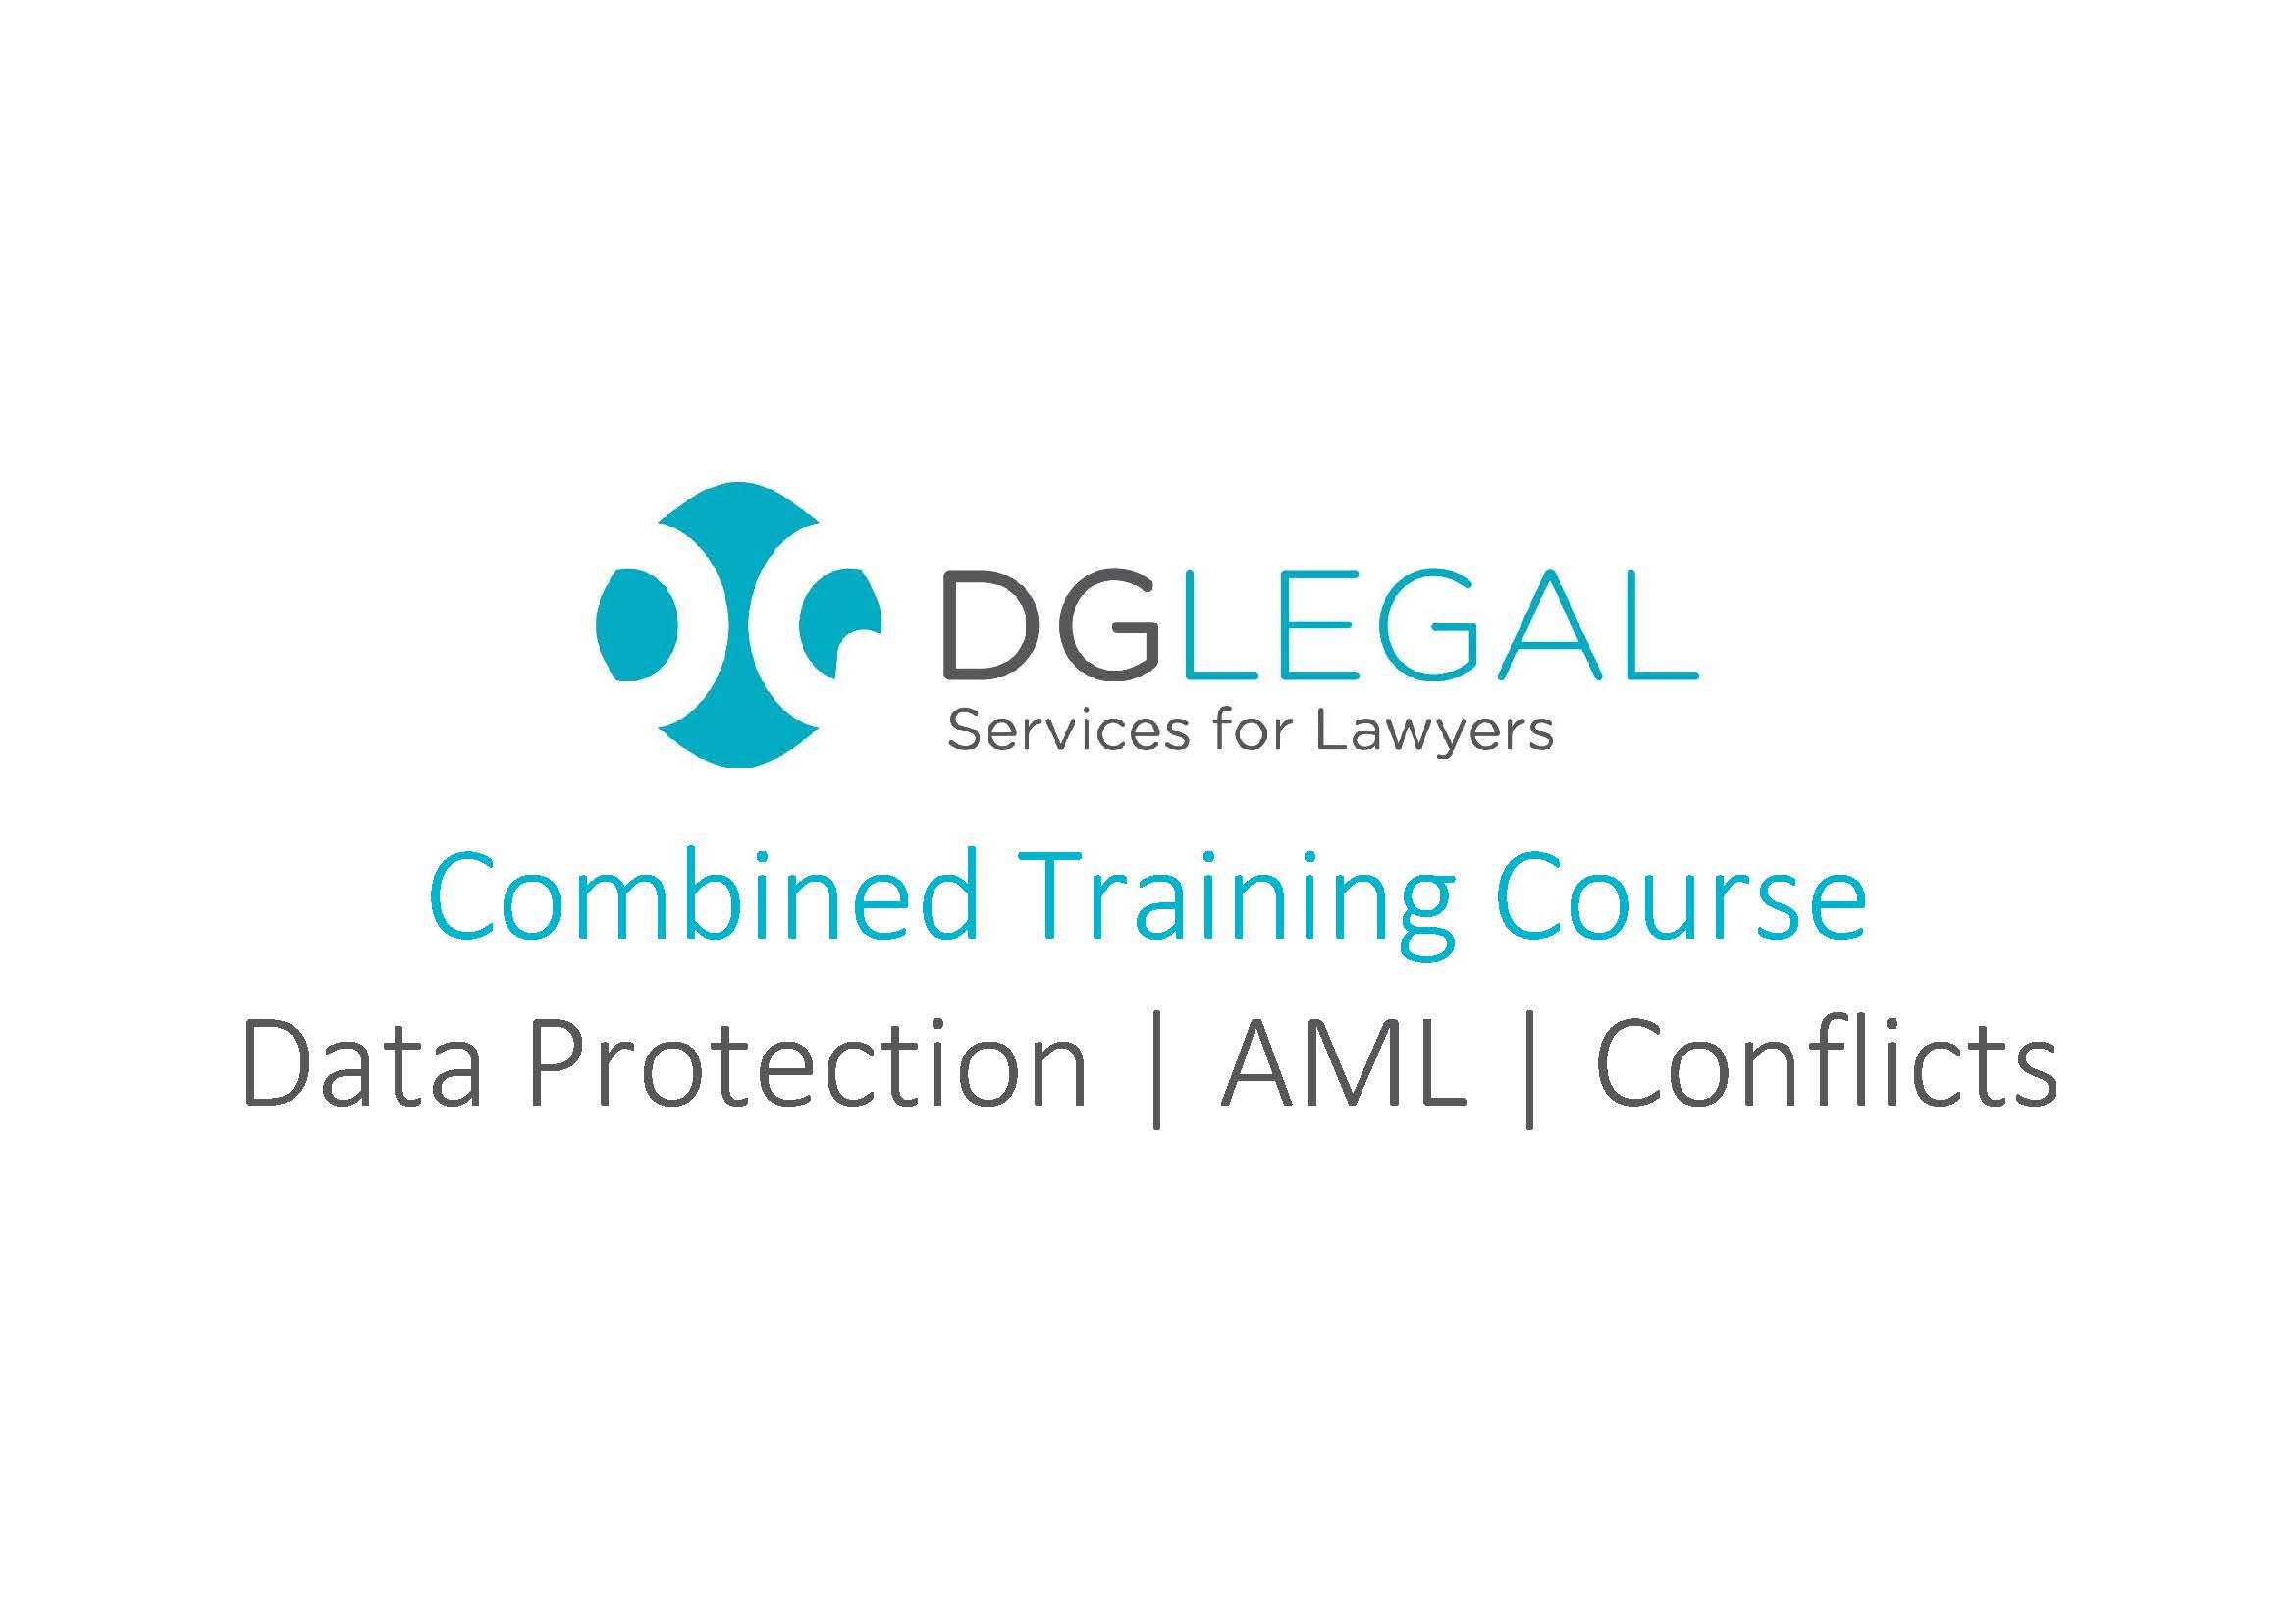 Combined Training Course